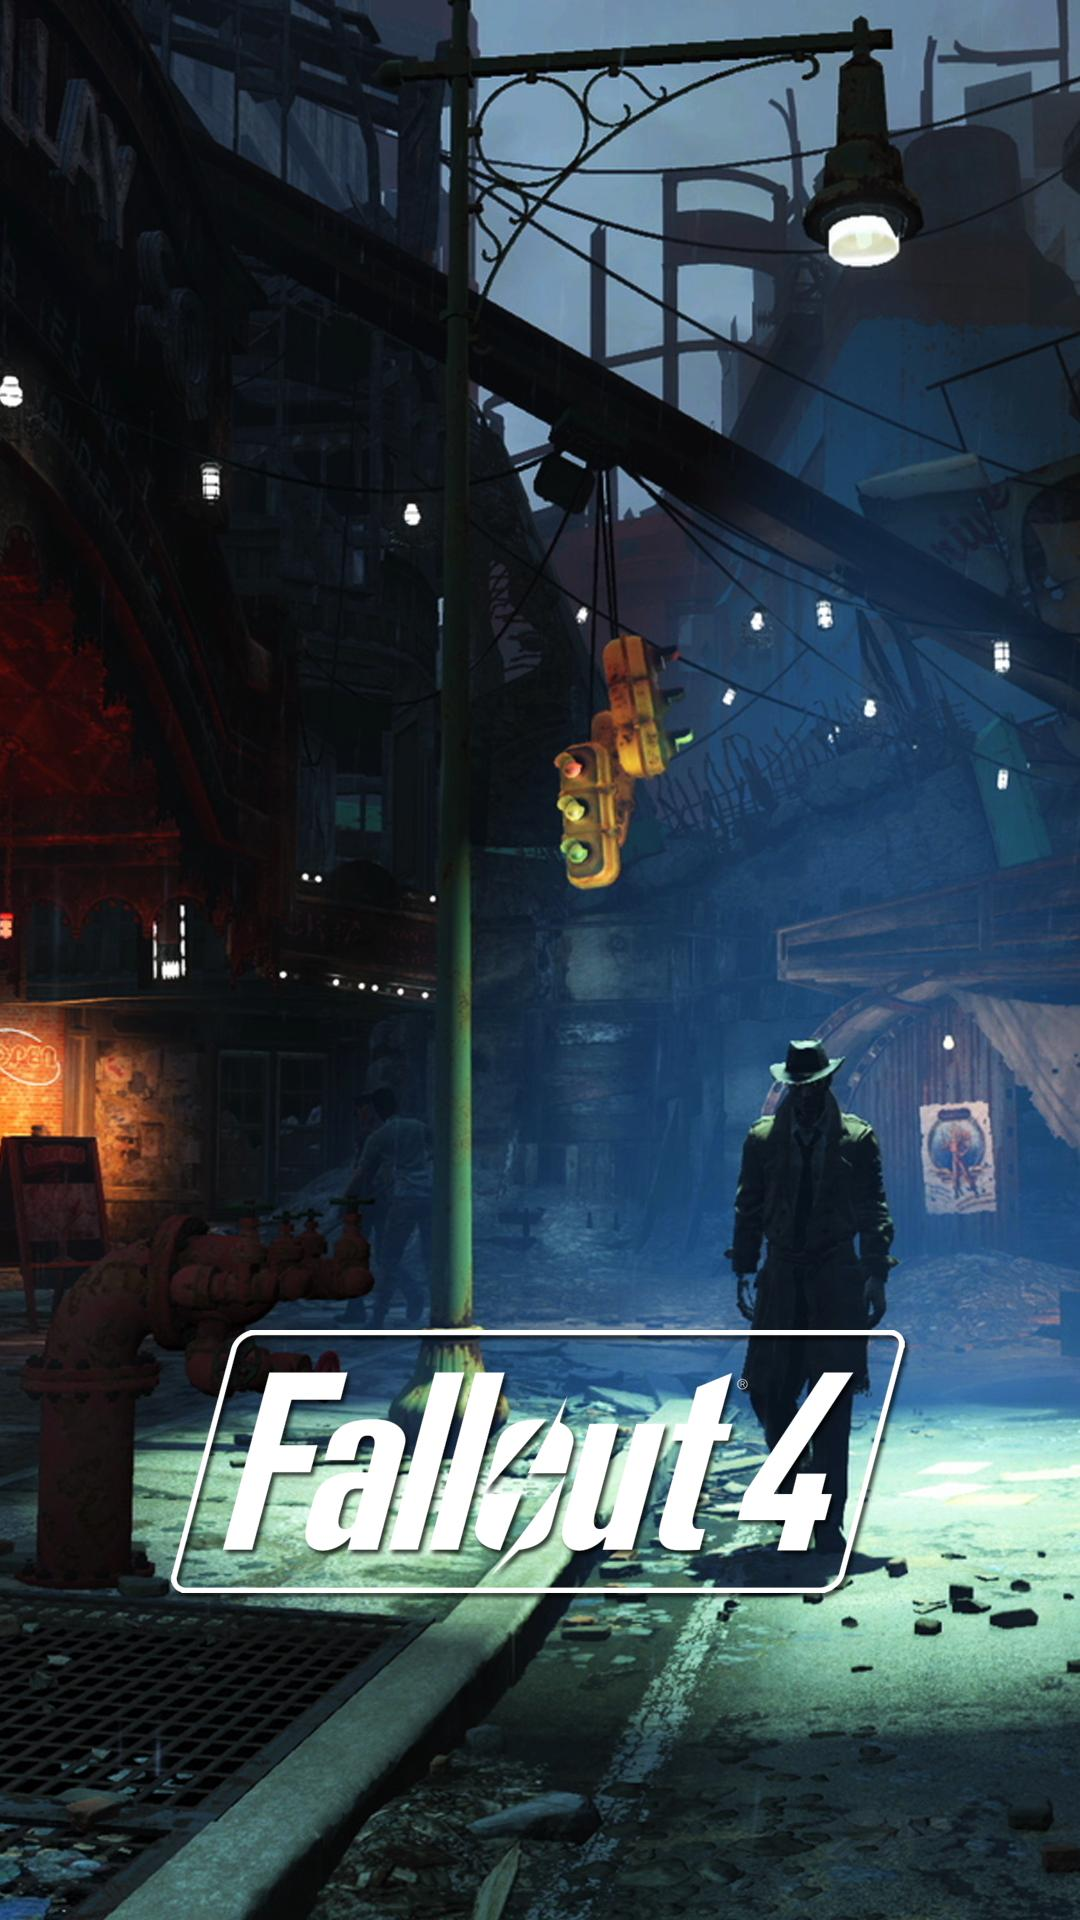 fallout 4 nieuws prachtige iphone en android wallpapers voor fallout